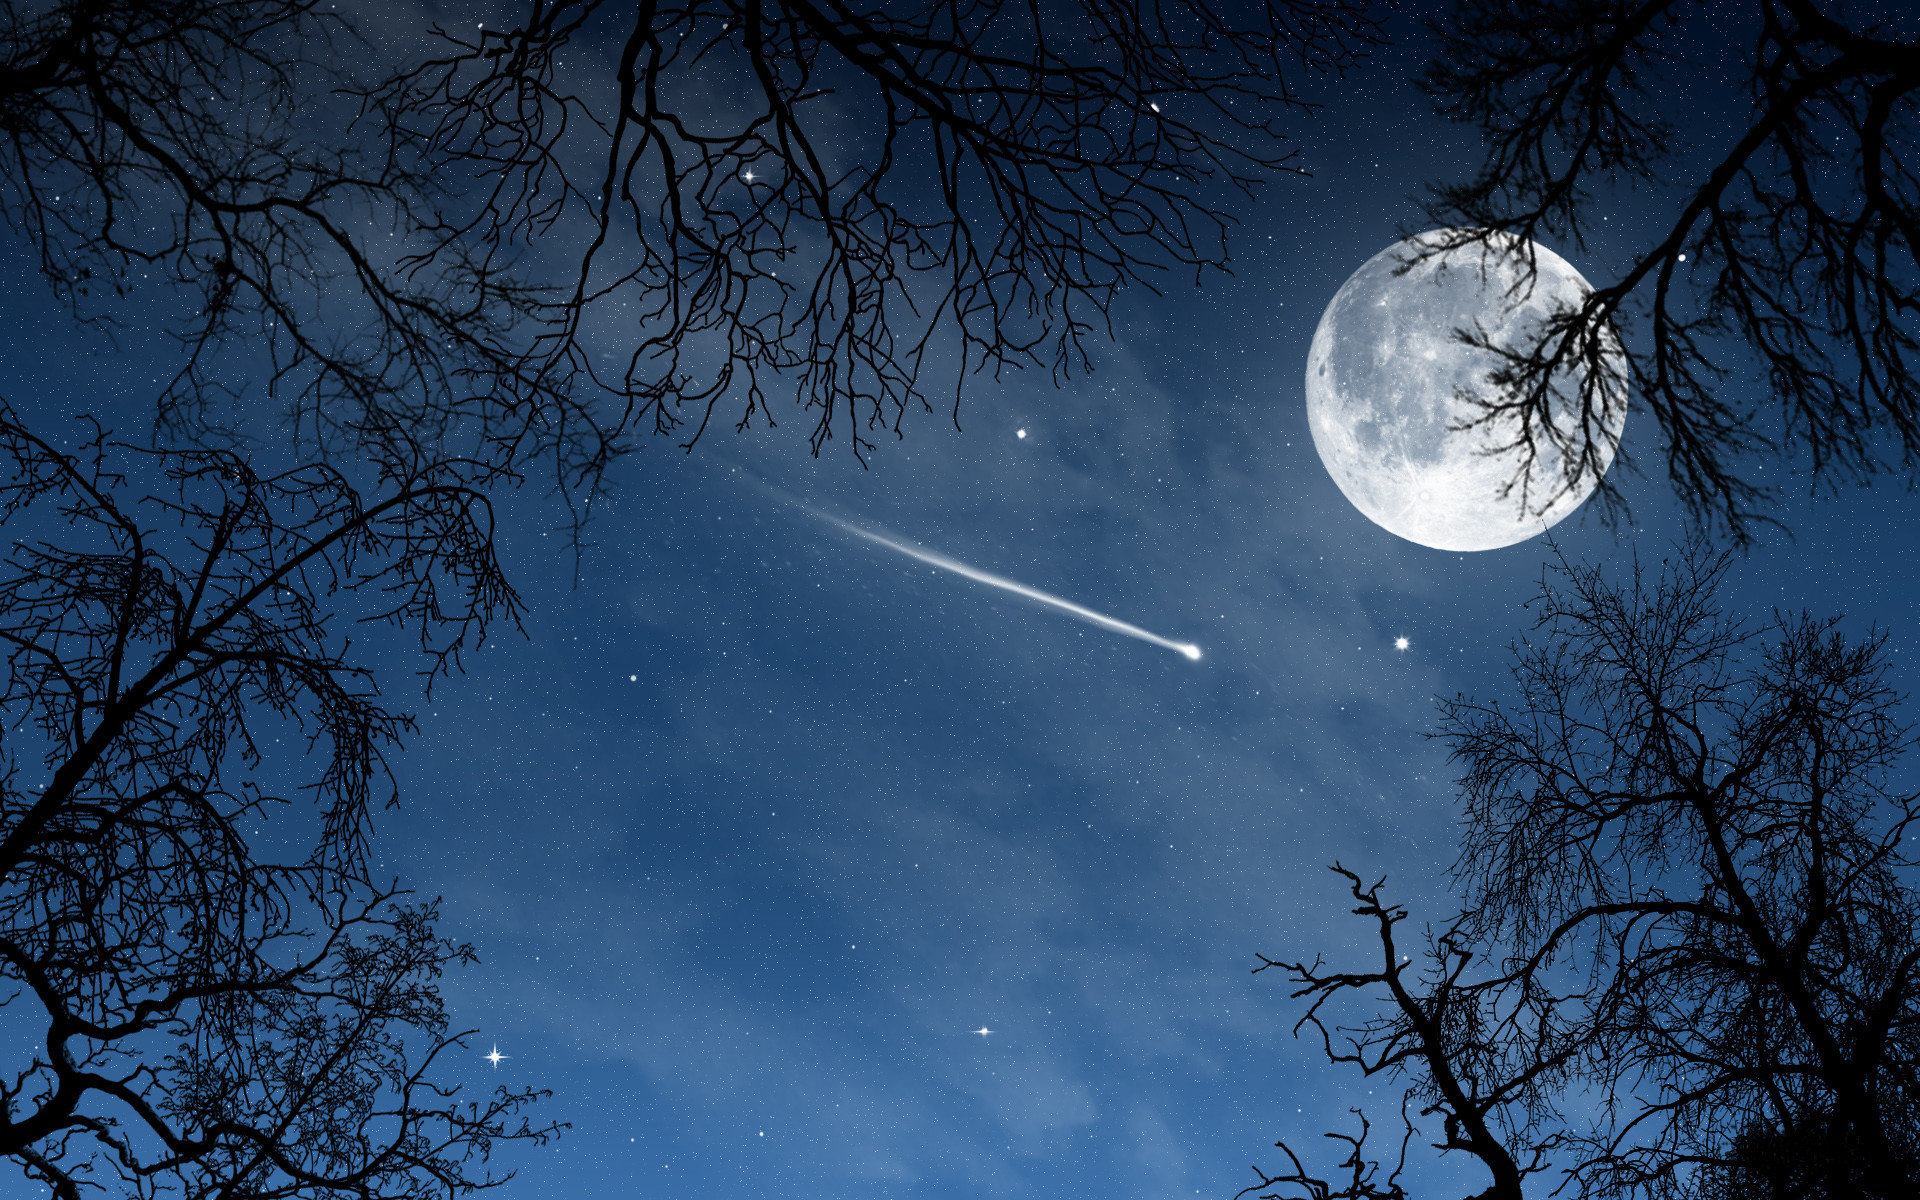 Moon and Stars Wallpaper from Our Universe and More. Beautiful night sky  with full moon, stars and a shooting star.